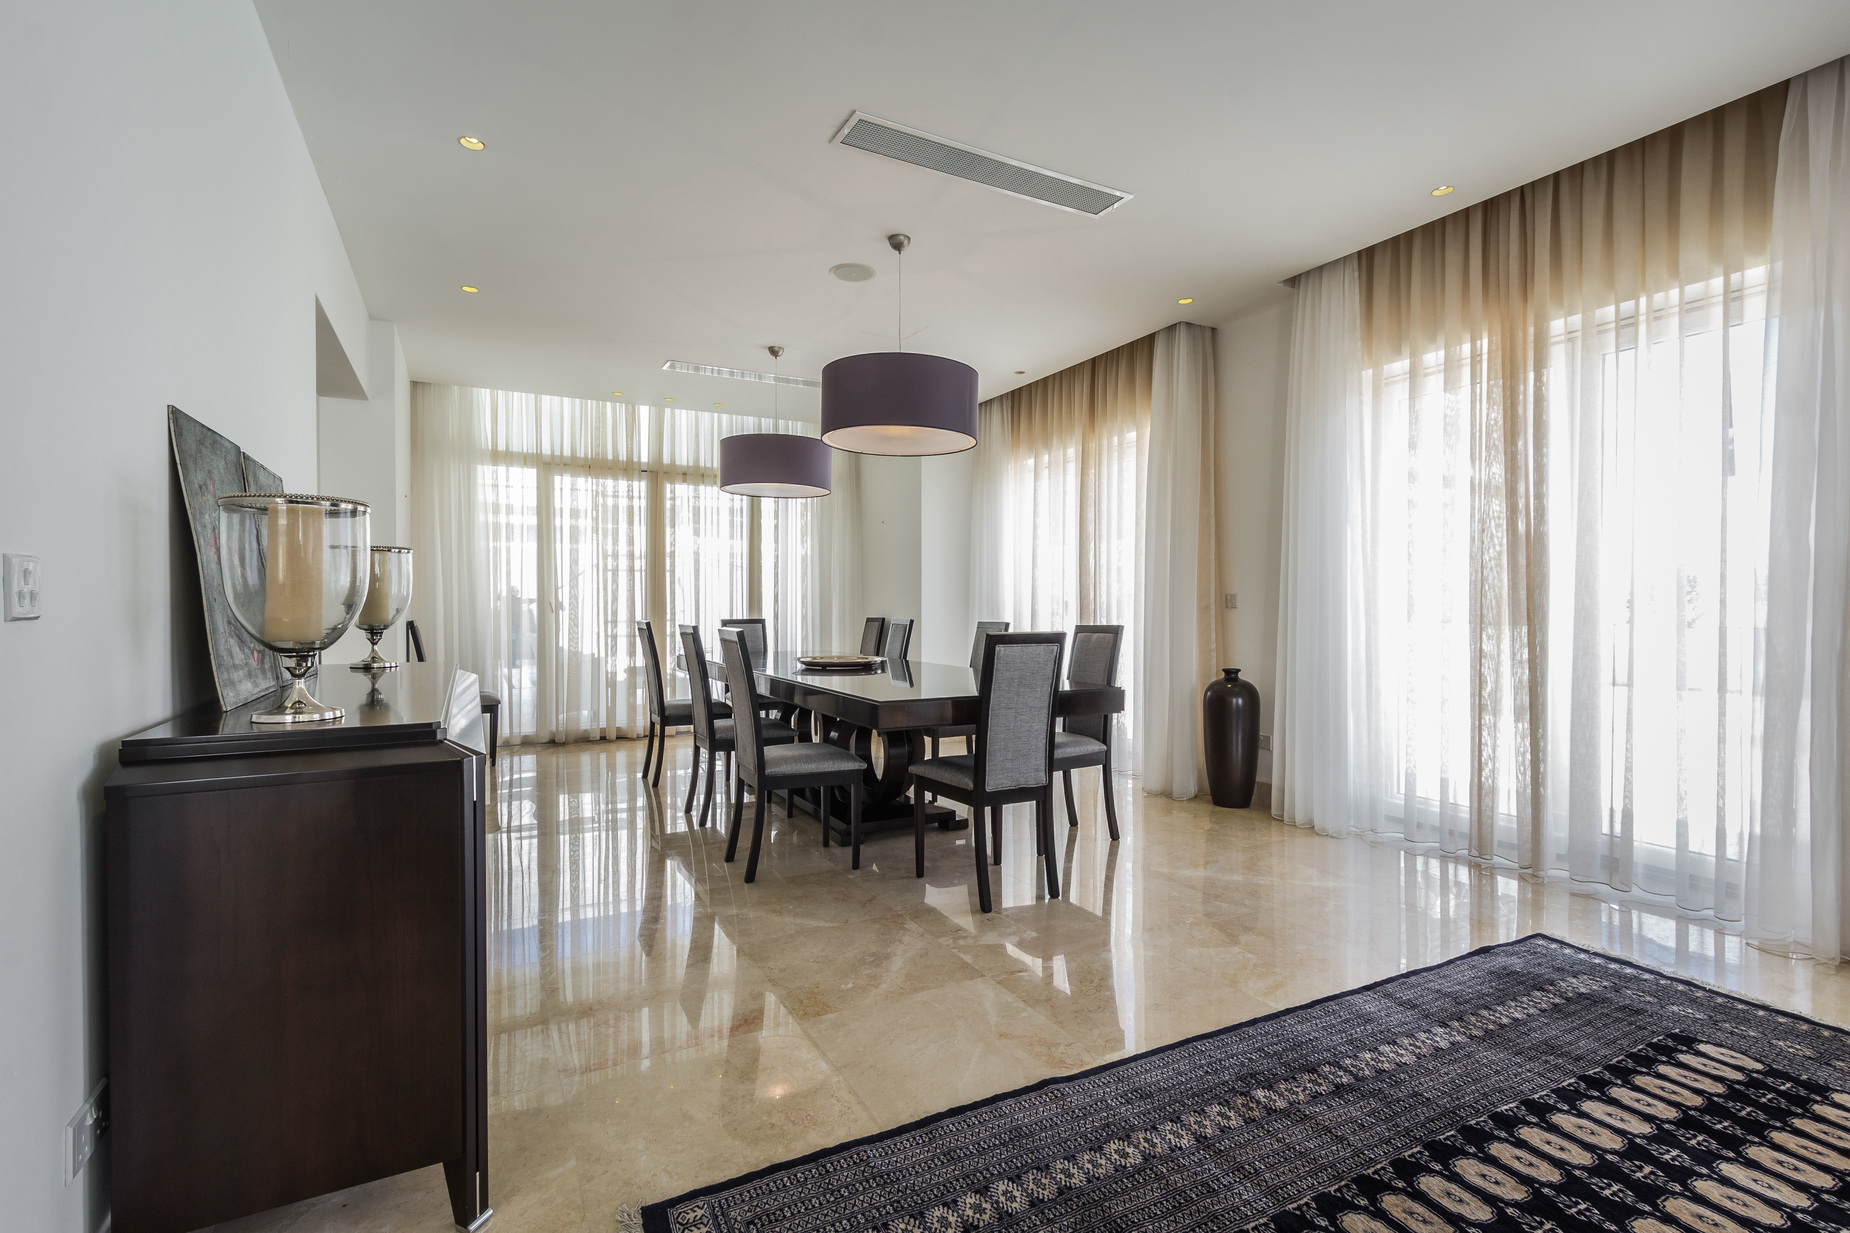 5 bed Villa For Rent in Madliena, Madliena - thumb 5